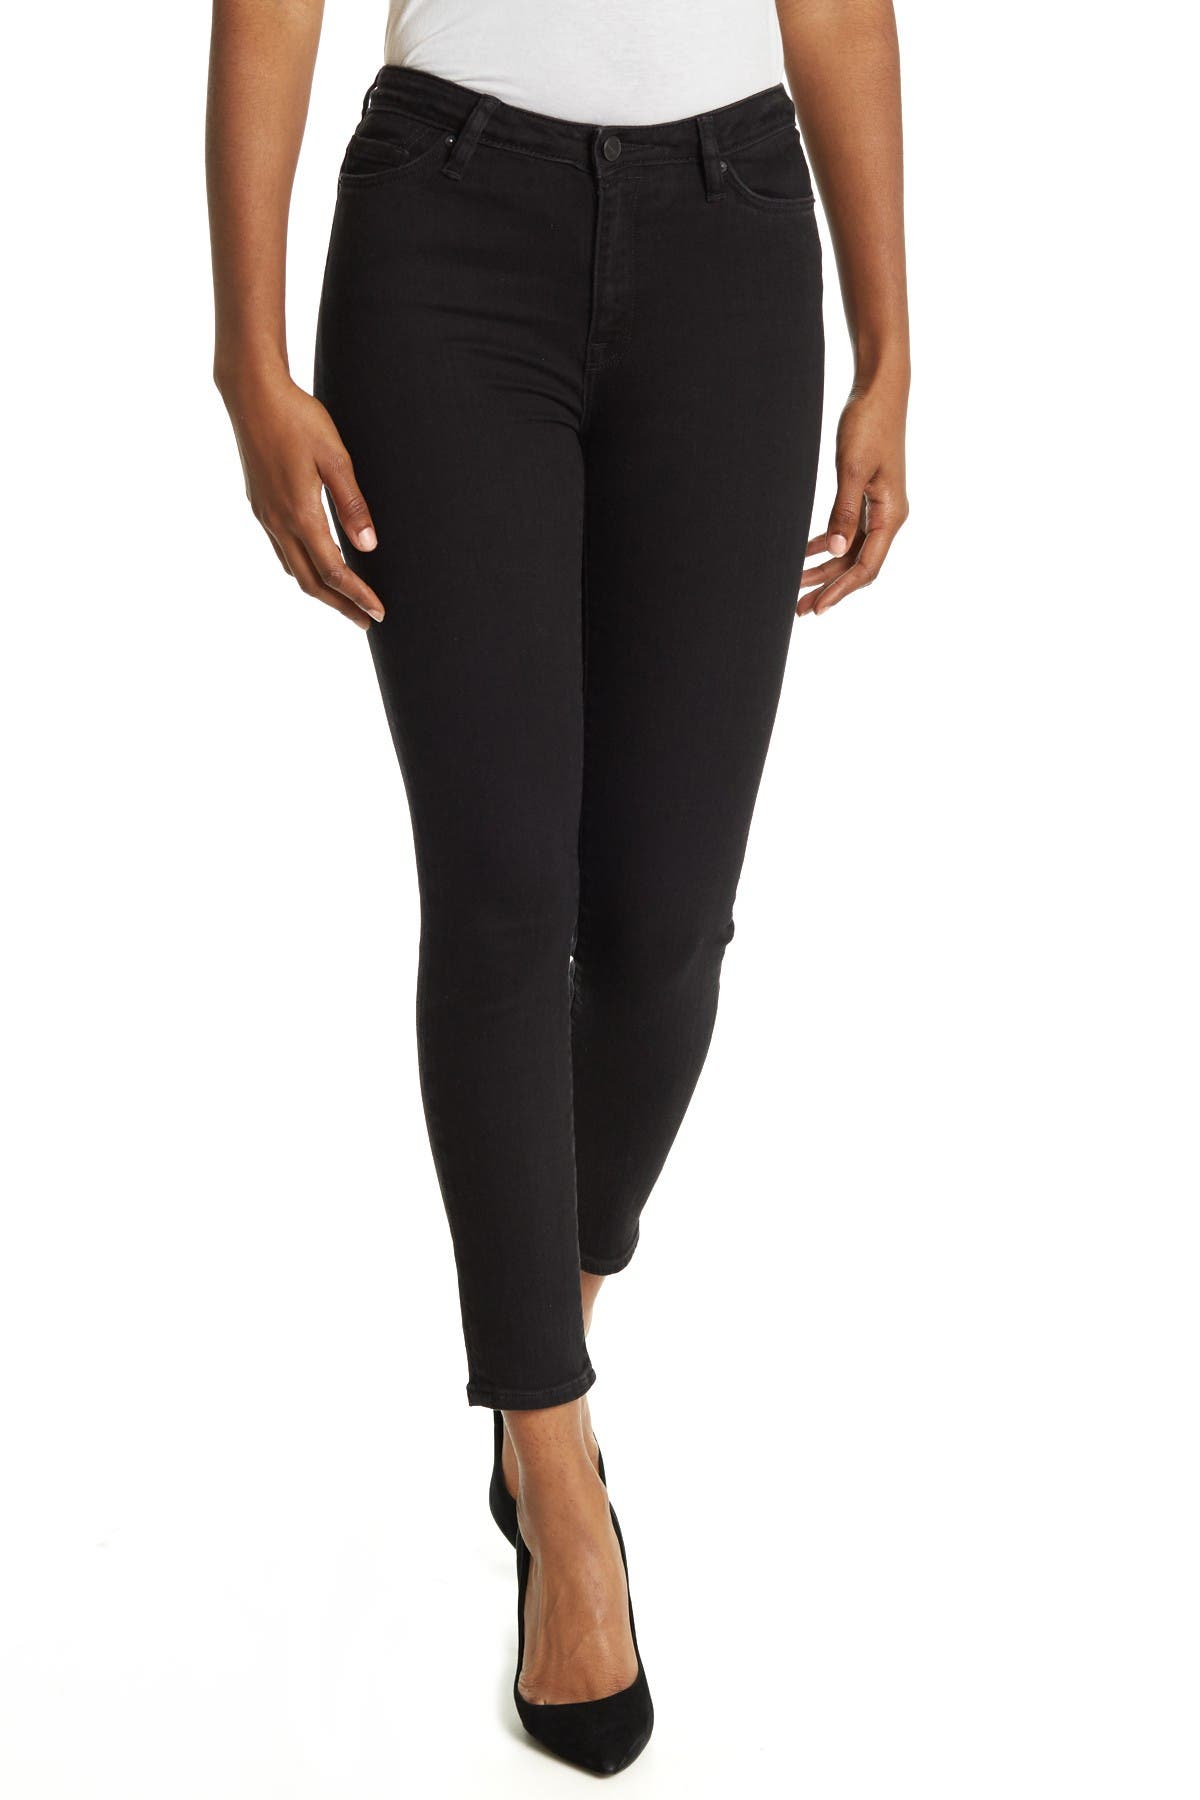 Image of ALLSAINTS Eve High Waisted Ankle Skinny Jeans